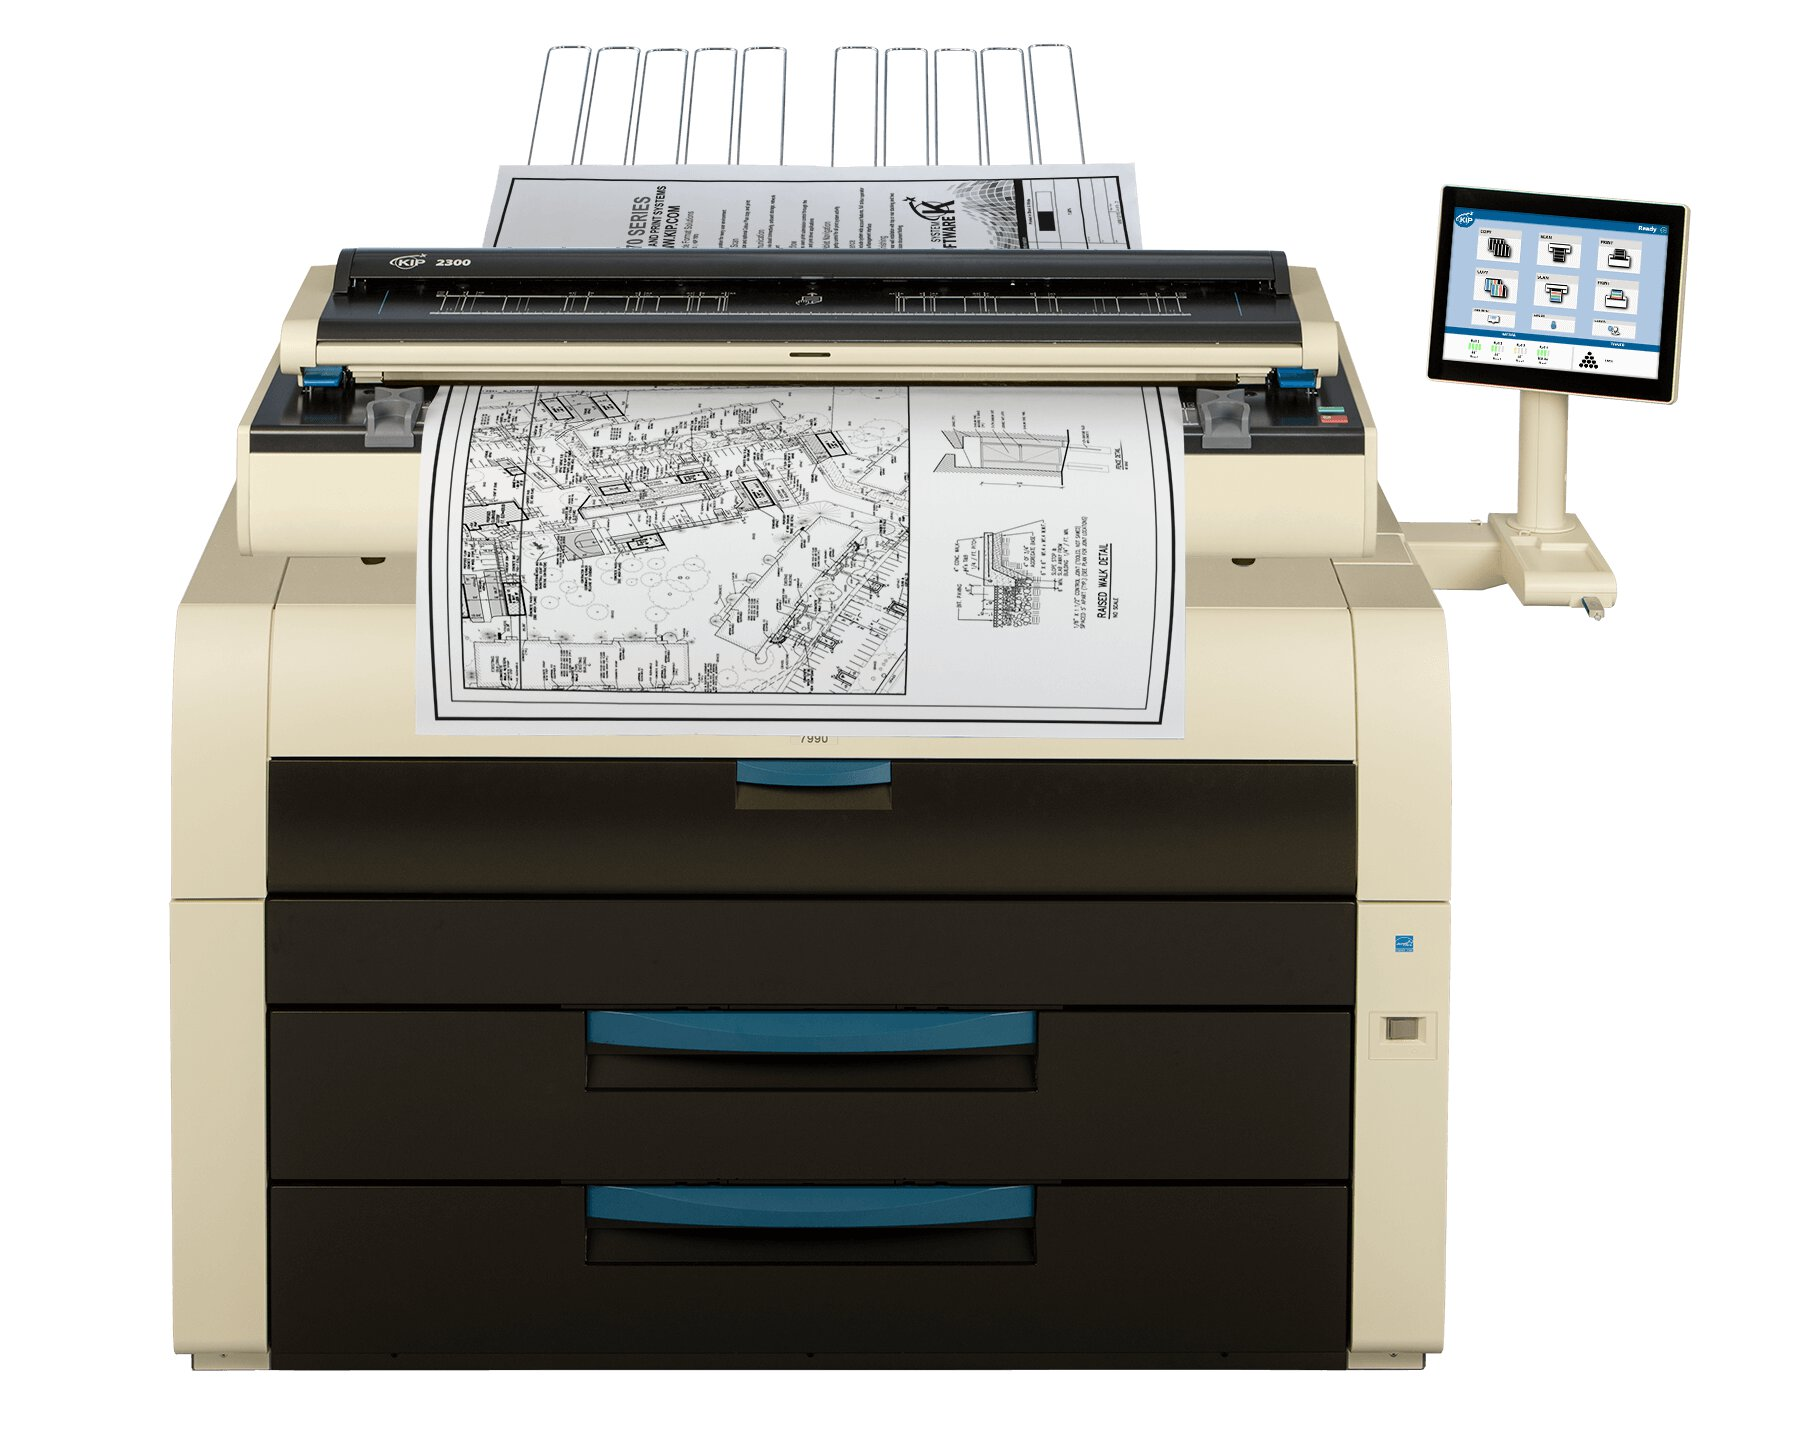 KIP 7990 professional printer